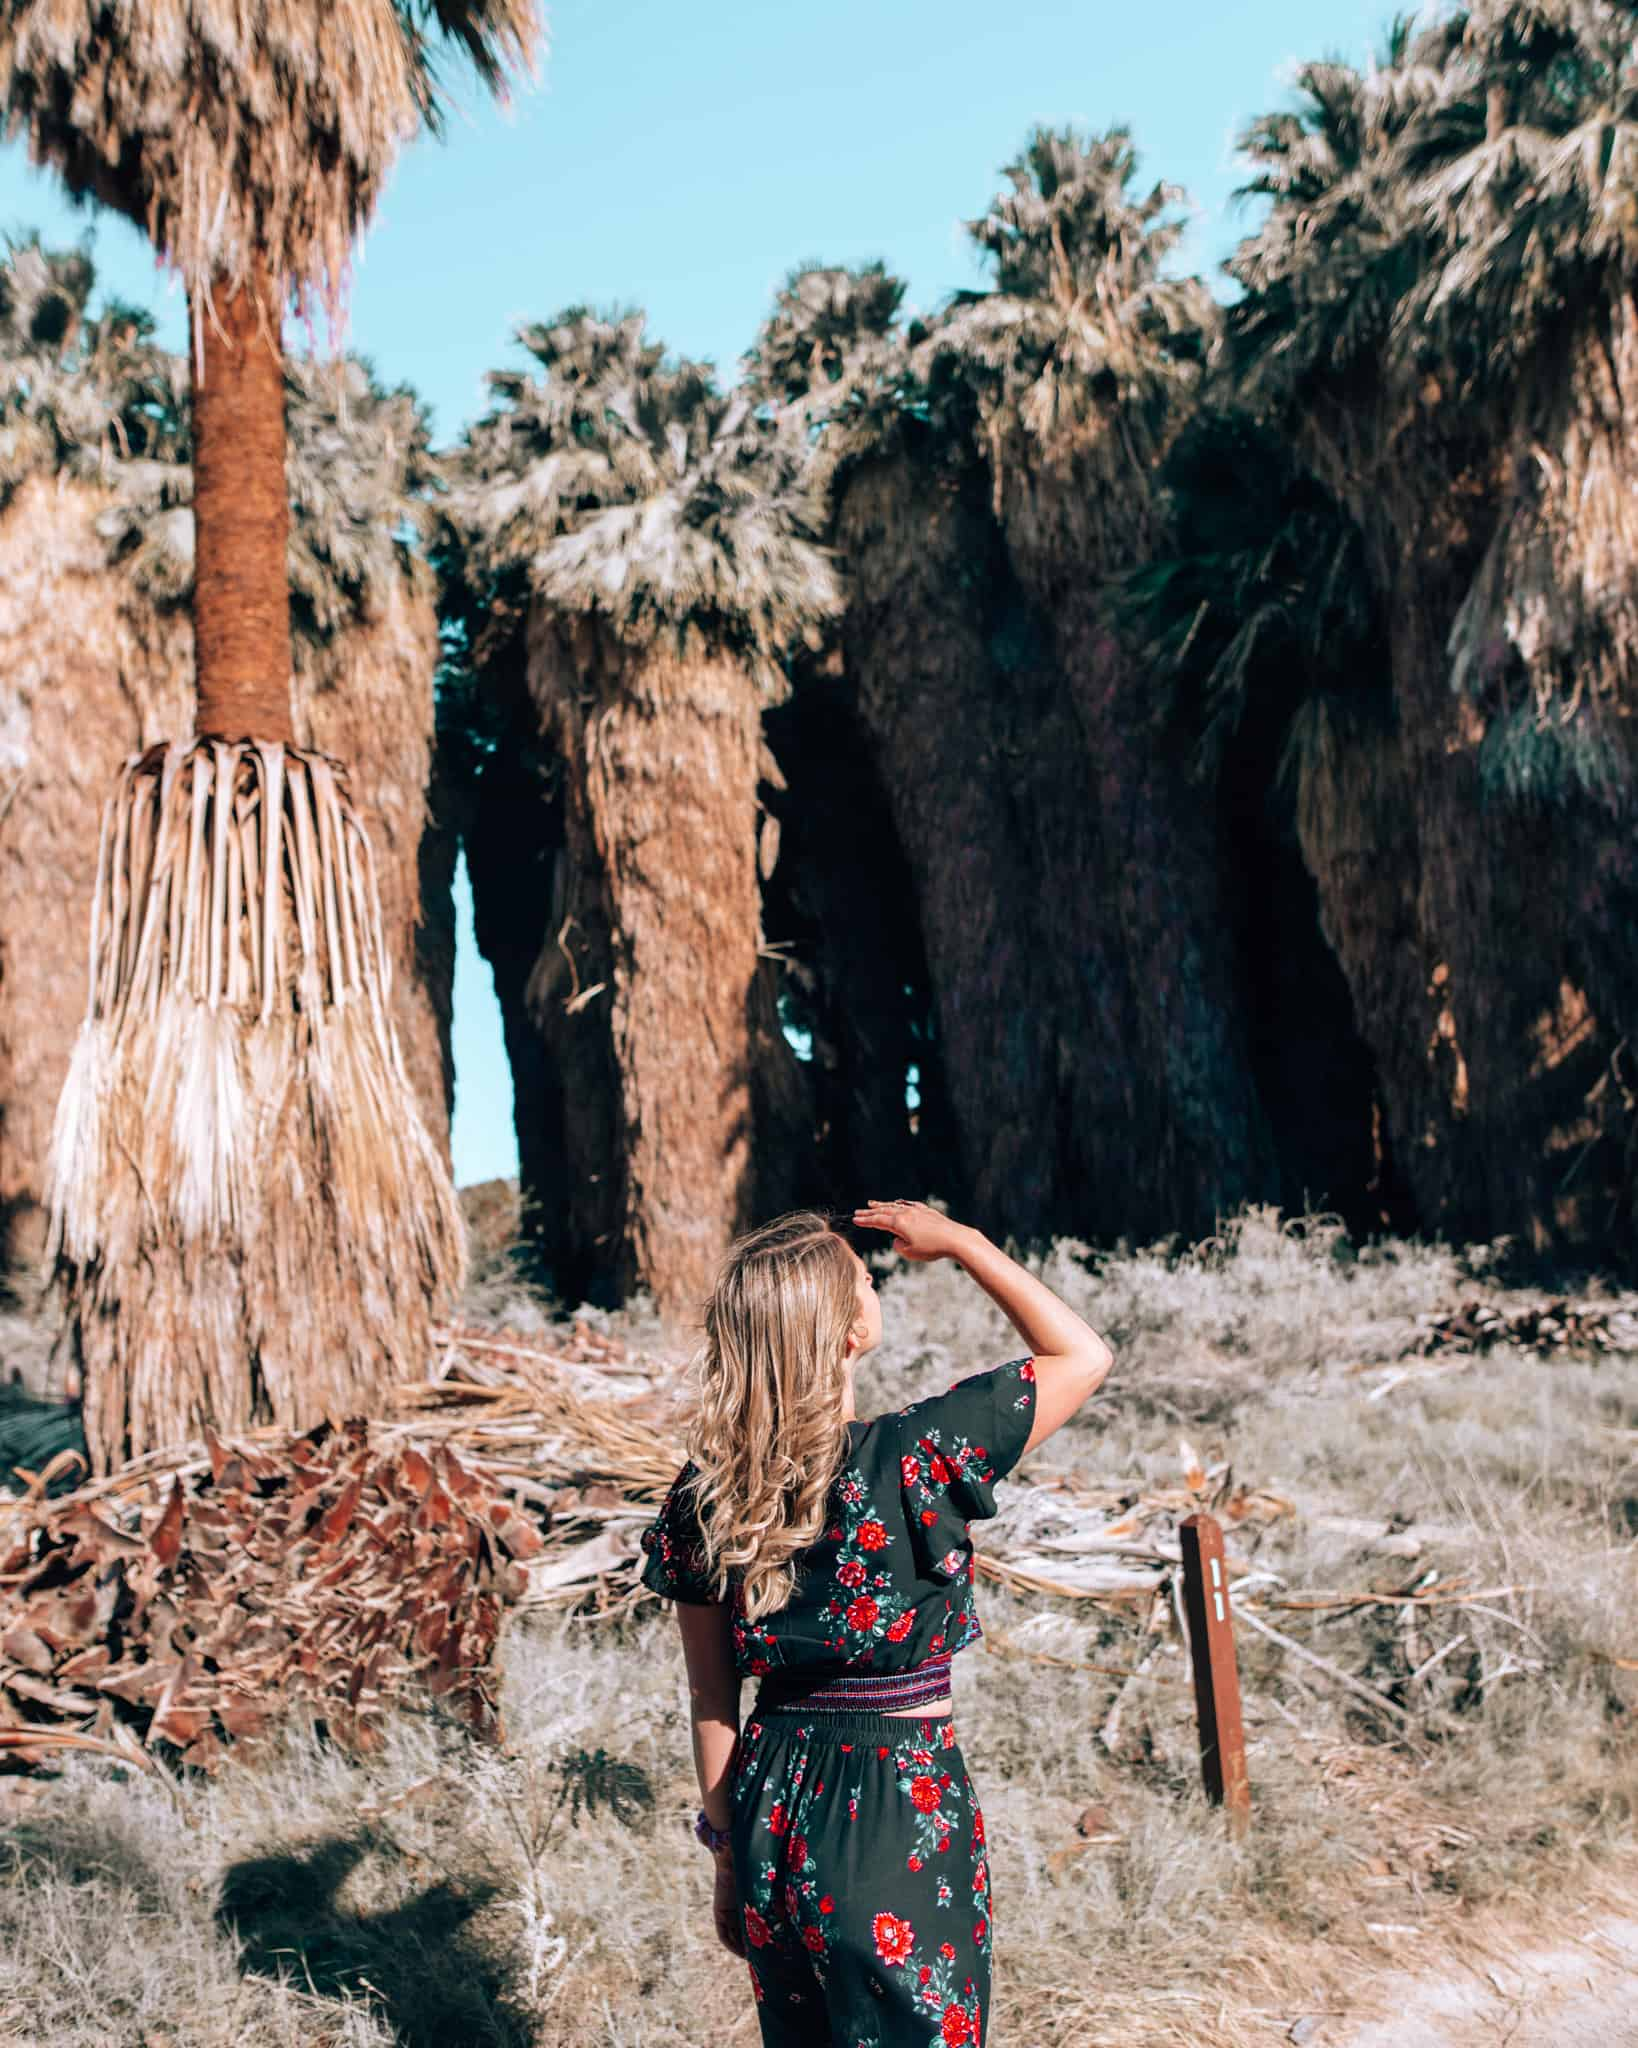 girl standing with hand at head looking at palm trees